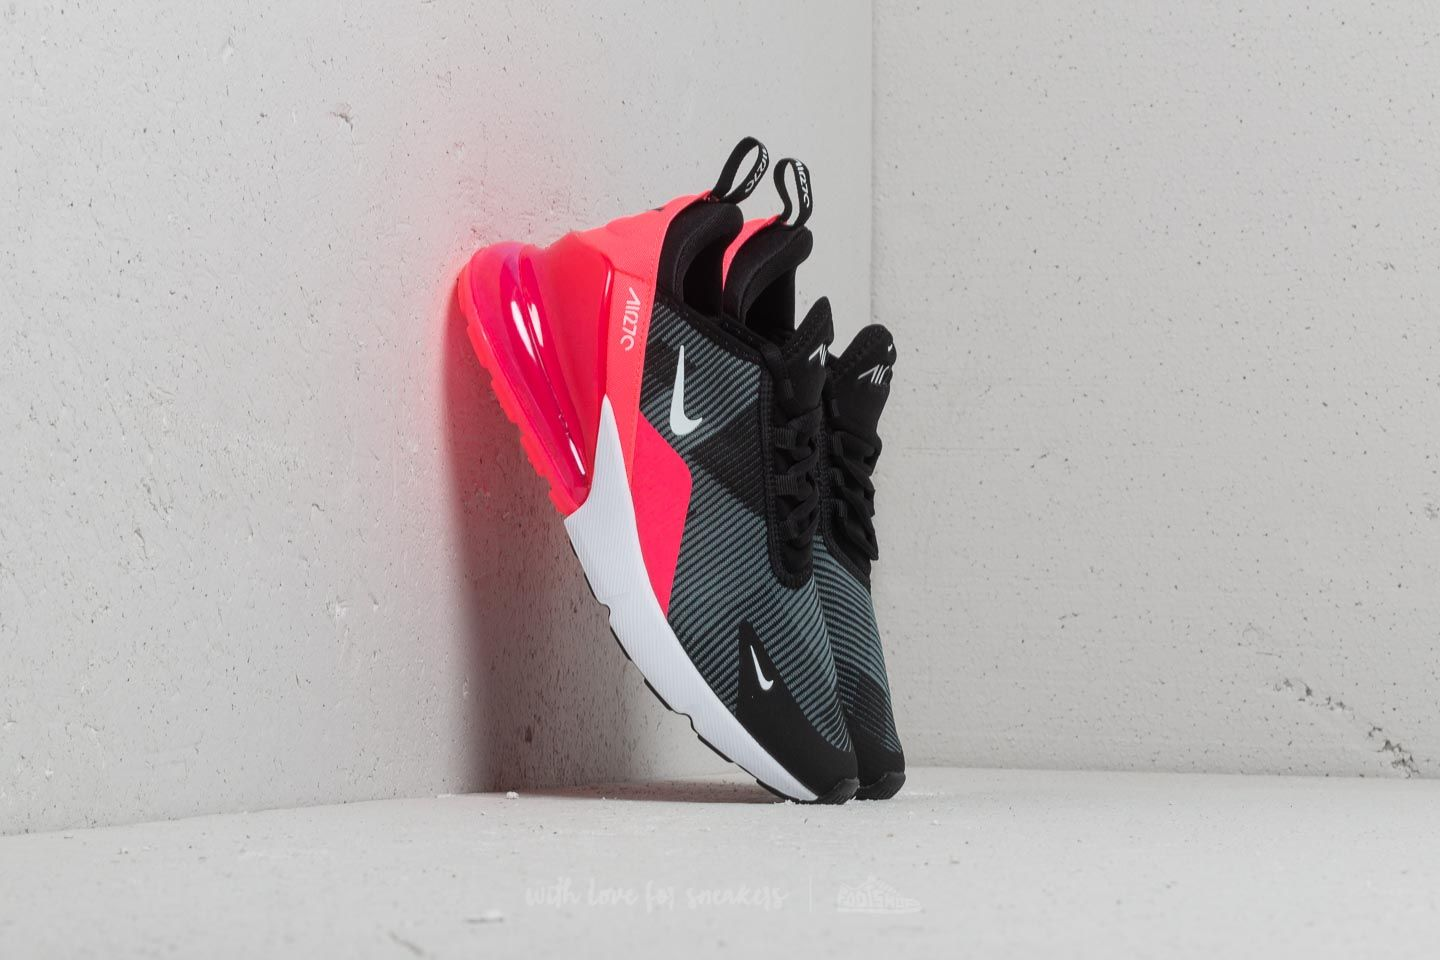 low priced 01540 2622b Nike Air Max 270 Knit Jacquard (GS). Black  White-Racer Pink